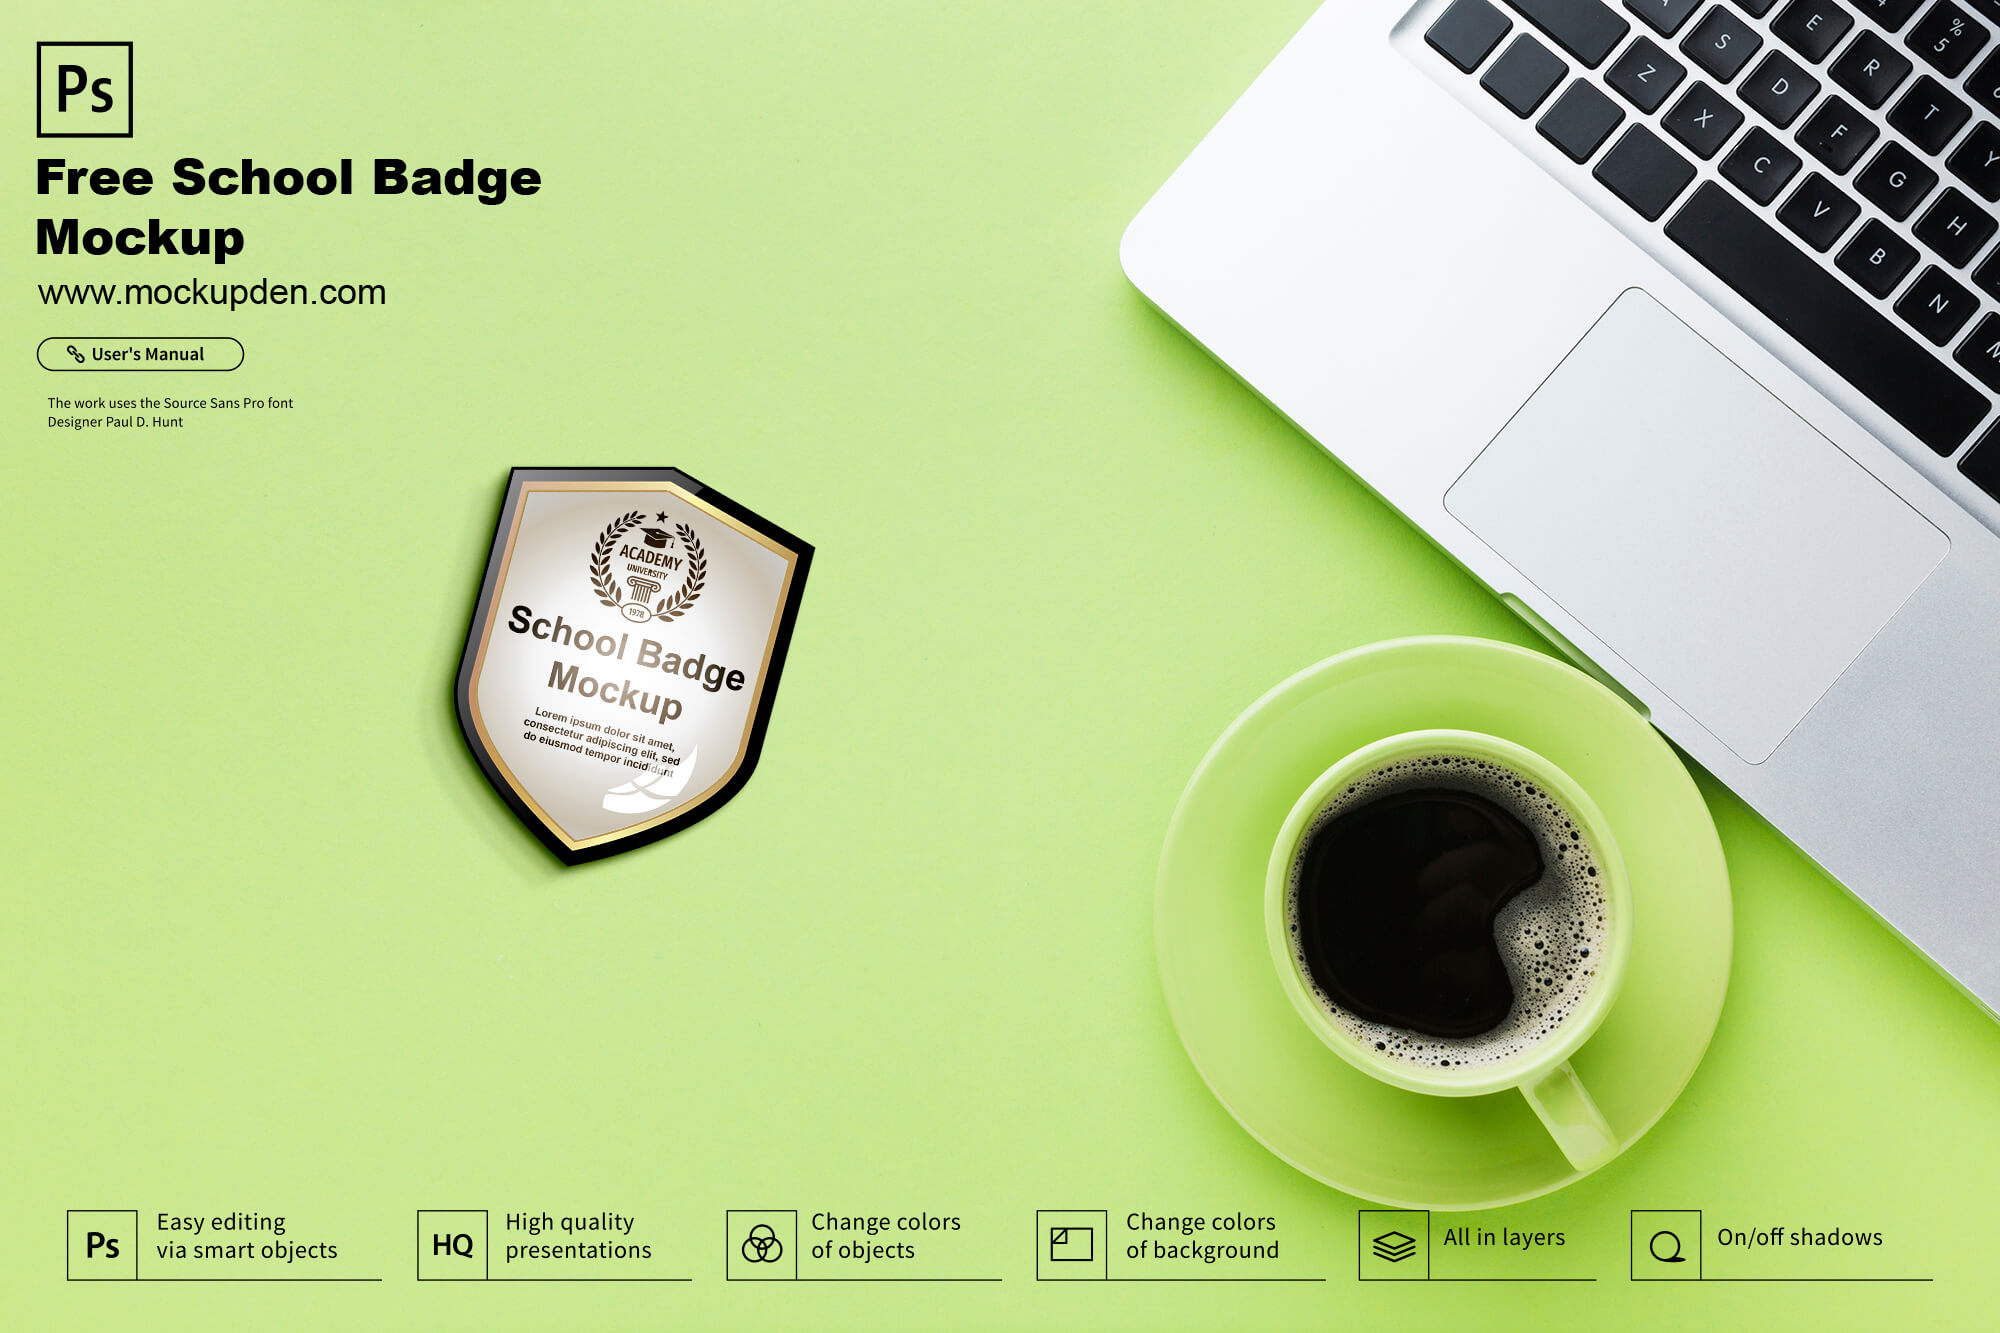 Free School Badge Mockup PSD Template